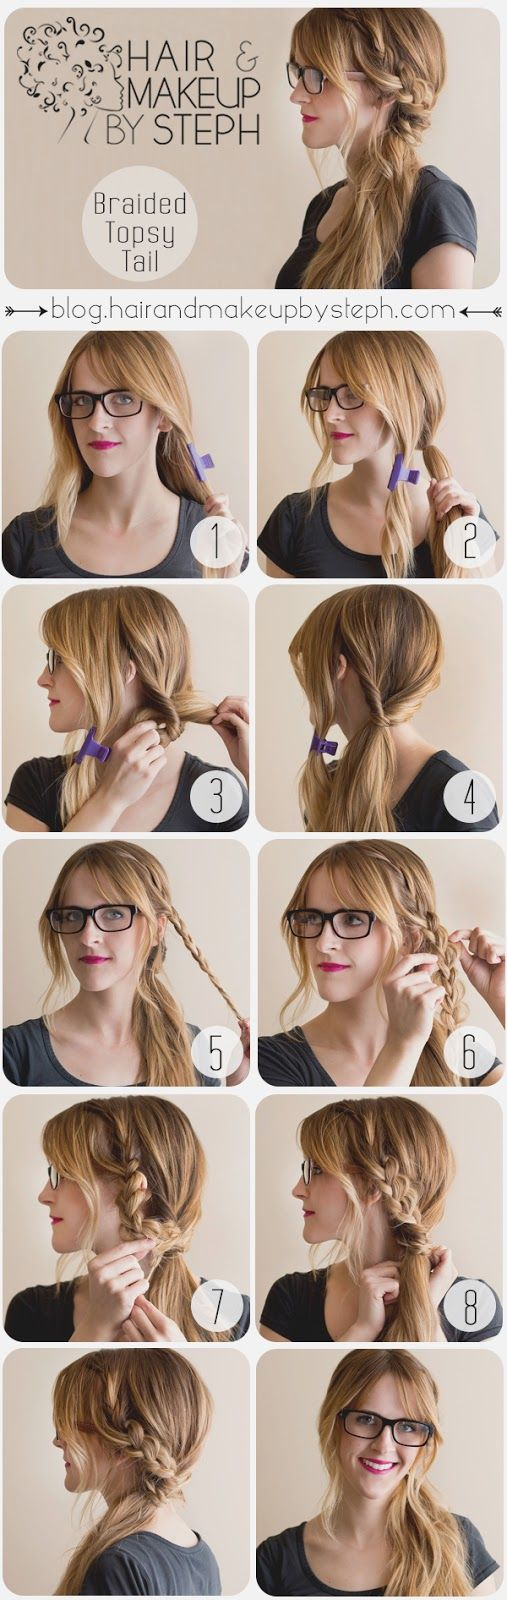 Hair and Make-up by Steph: Braided Topsy Tail - popular hair tutorials photo